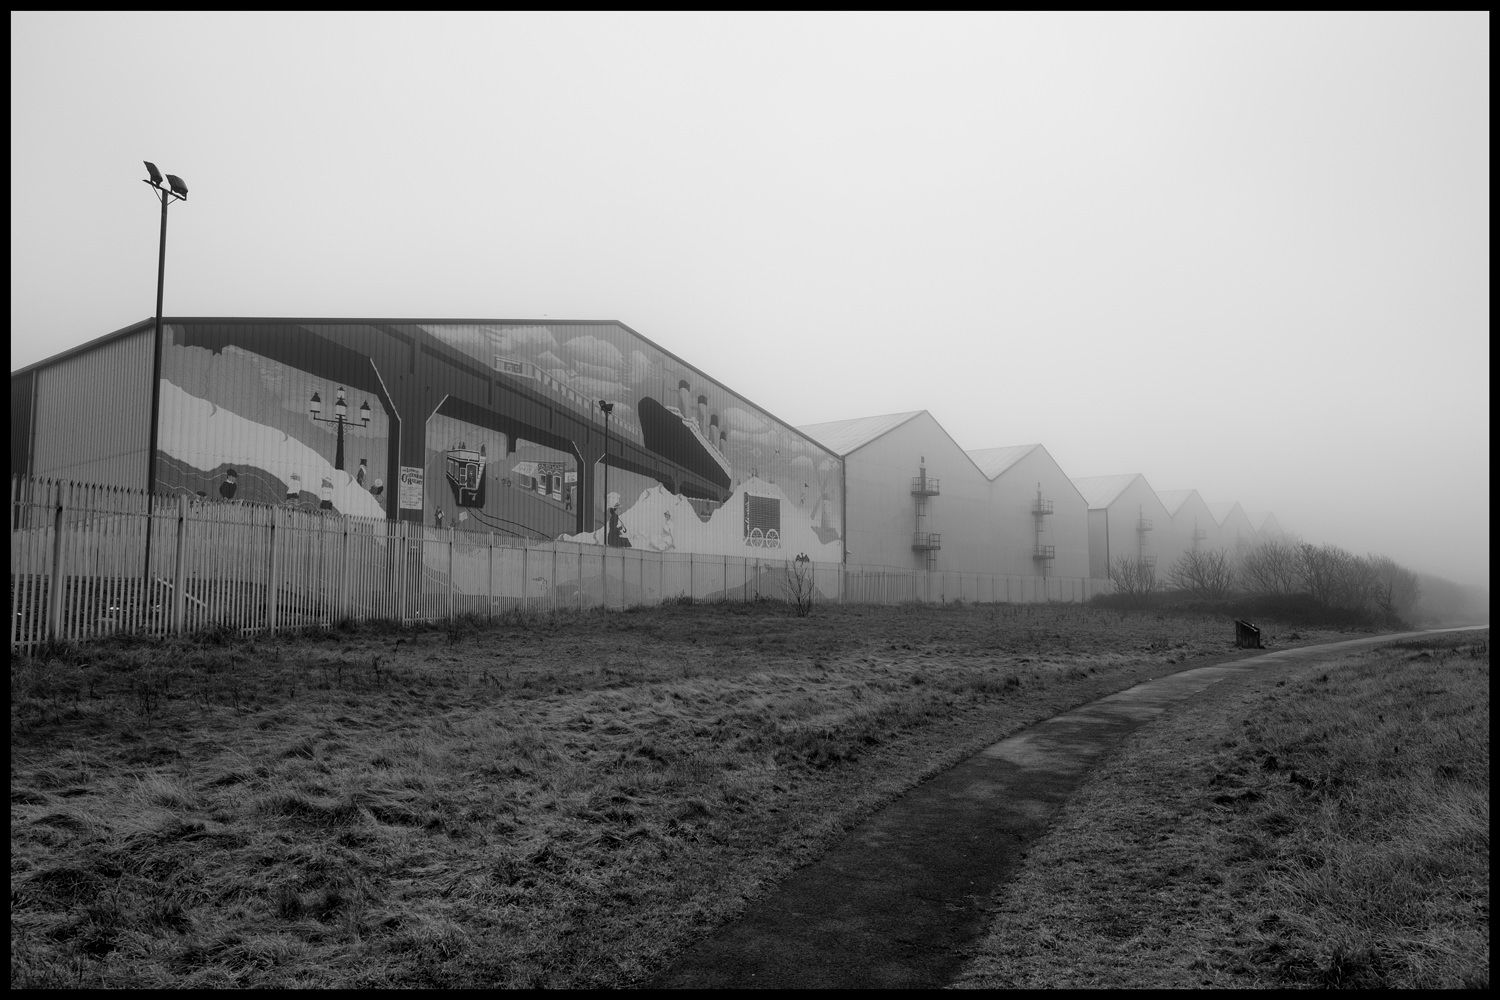 The warehouses at the end of the docks disappearing into the fog